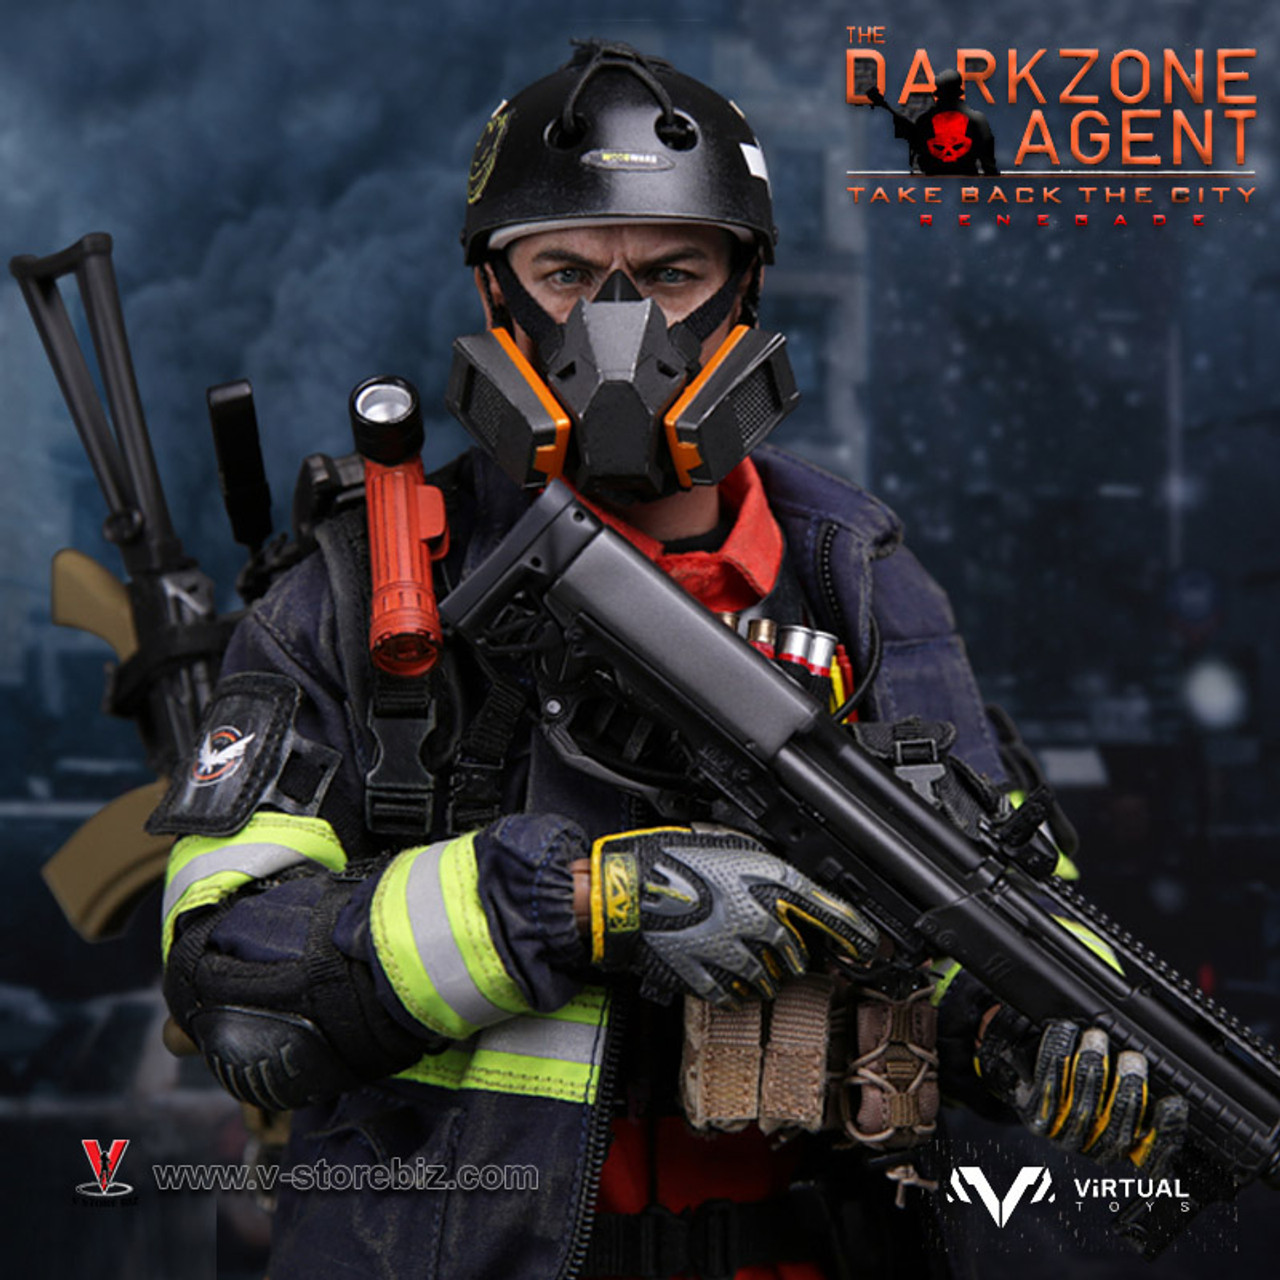 VTS Toys VM-018 1//6 The Darkzone Agent Take Back the City Renegade Action Figure